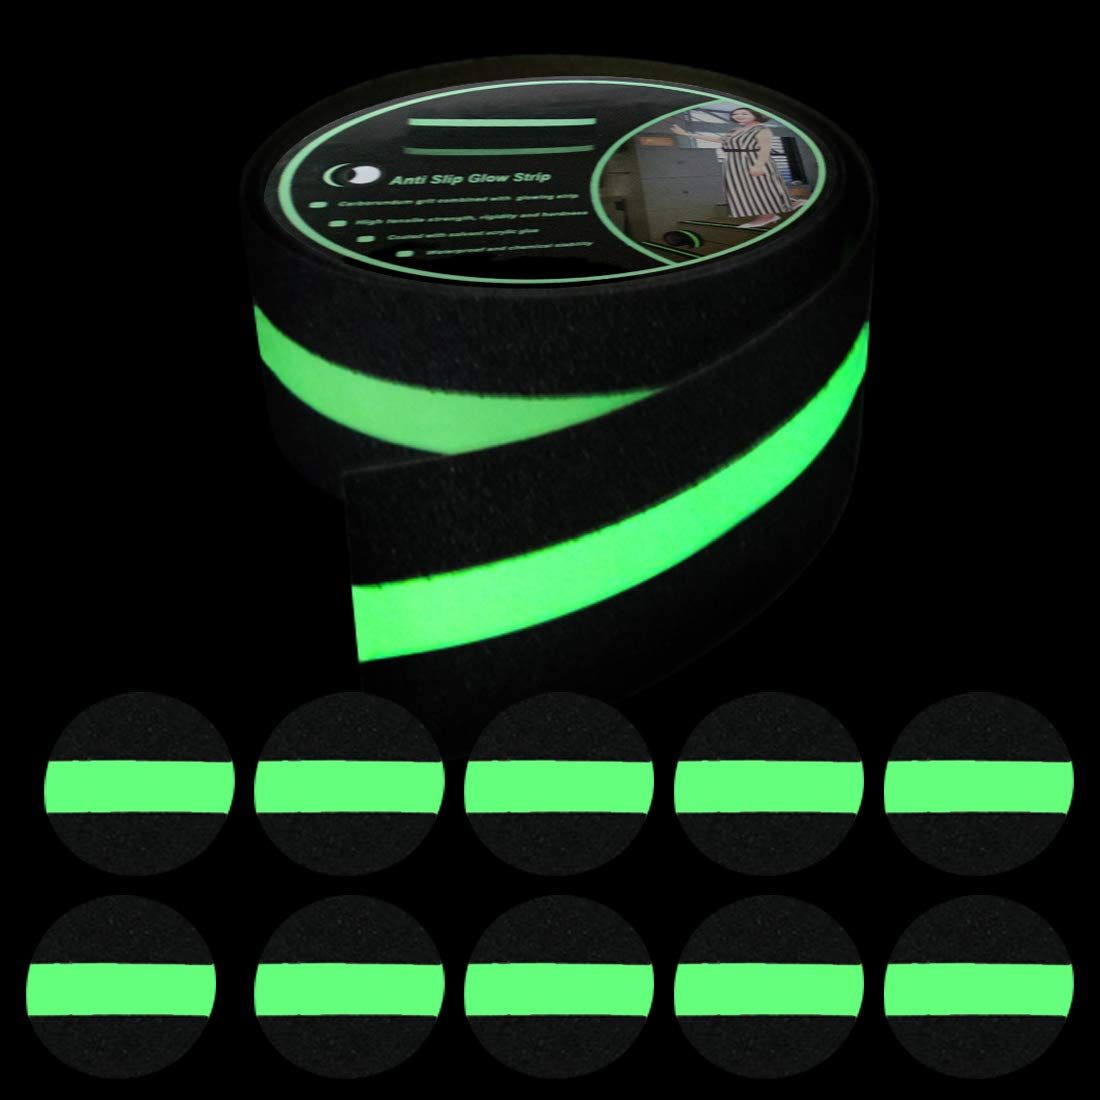 EONBON Anti Slip Glow in The Dark Tape 2 Inch x 14 Feet Anti Slip Traction Tape with 10 Non Slip Glow in The Dark Tape Dots for Stairs Tread Step Indoor Outdoor Use